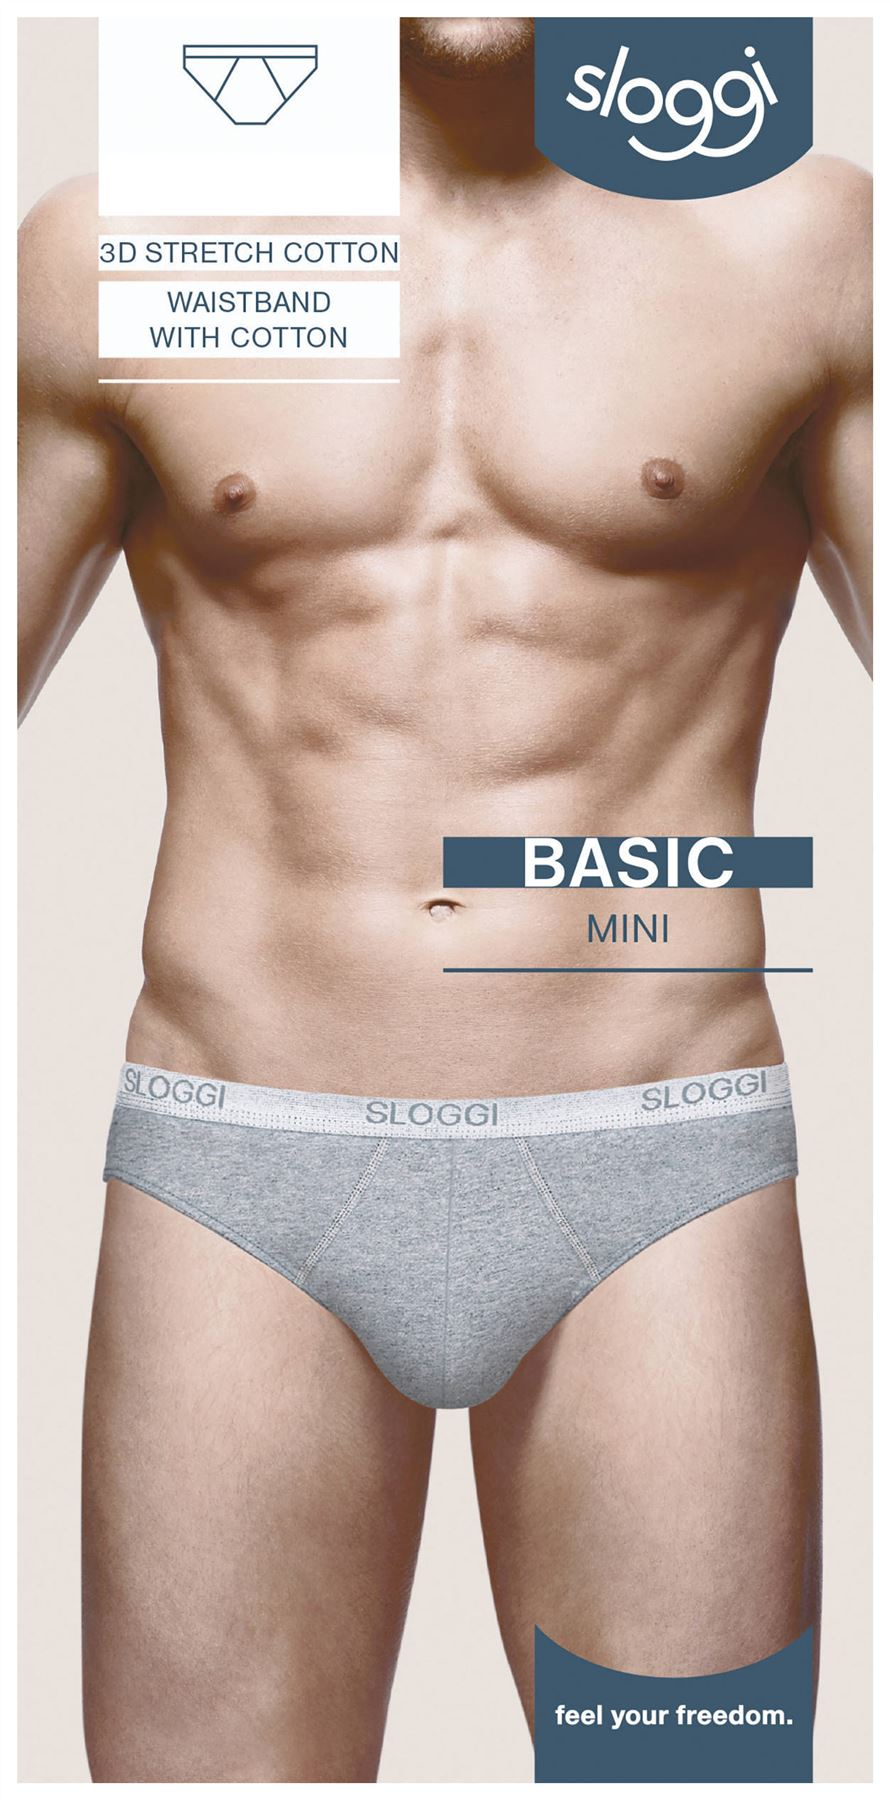 Sloggi-Basic-Mini-Brief-For-Men-Black-White-Grey-Navy miniatuur 4